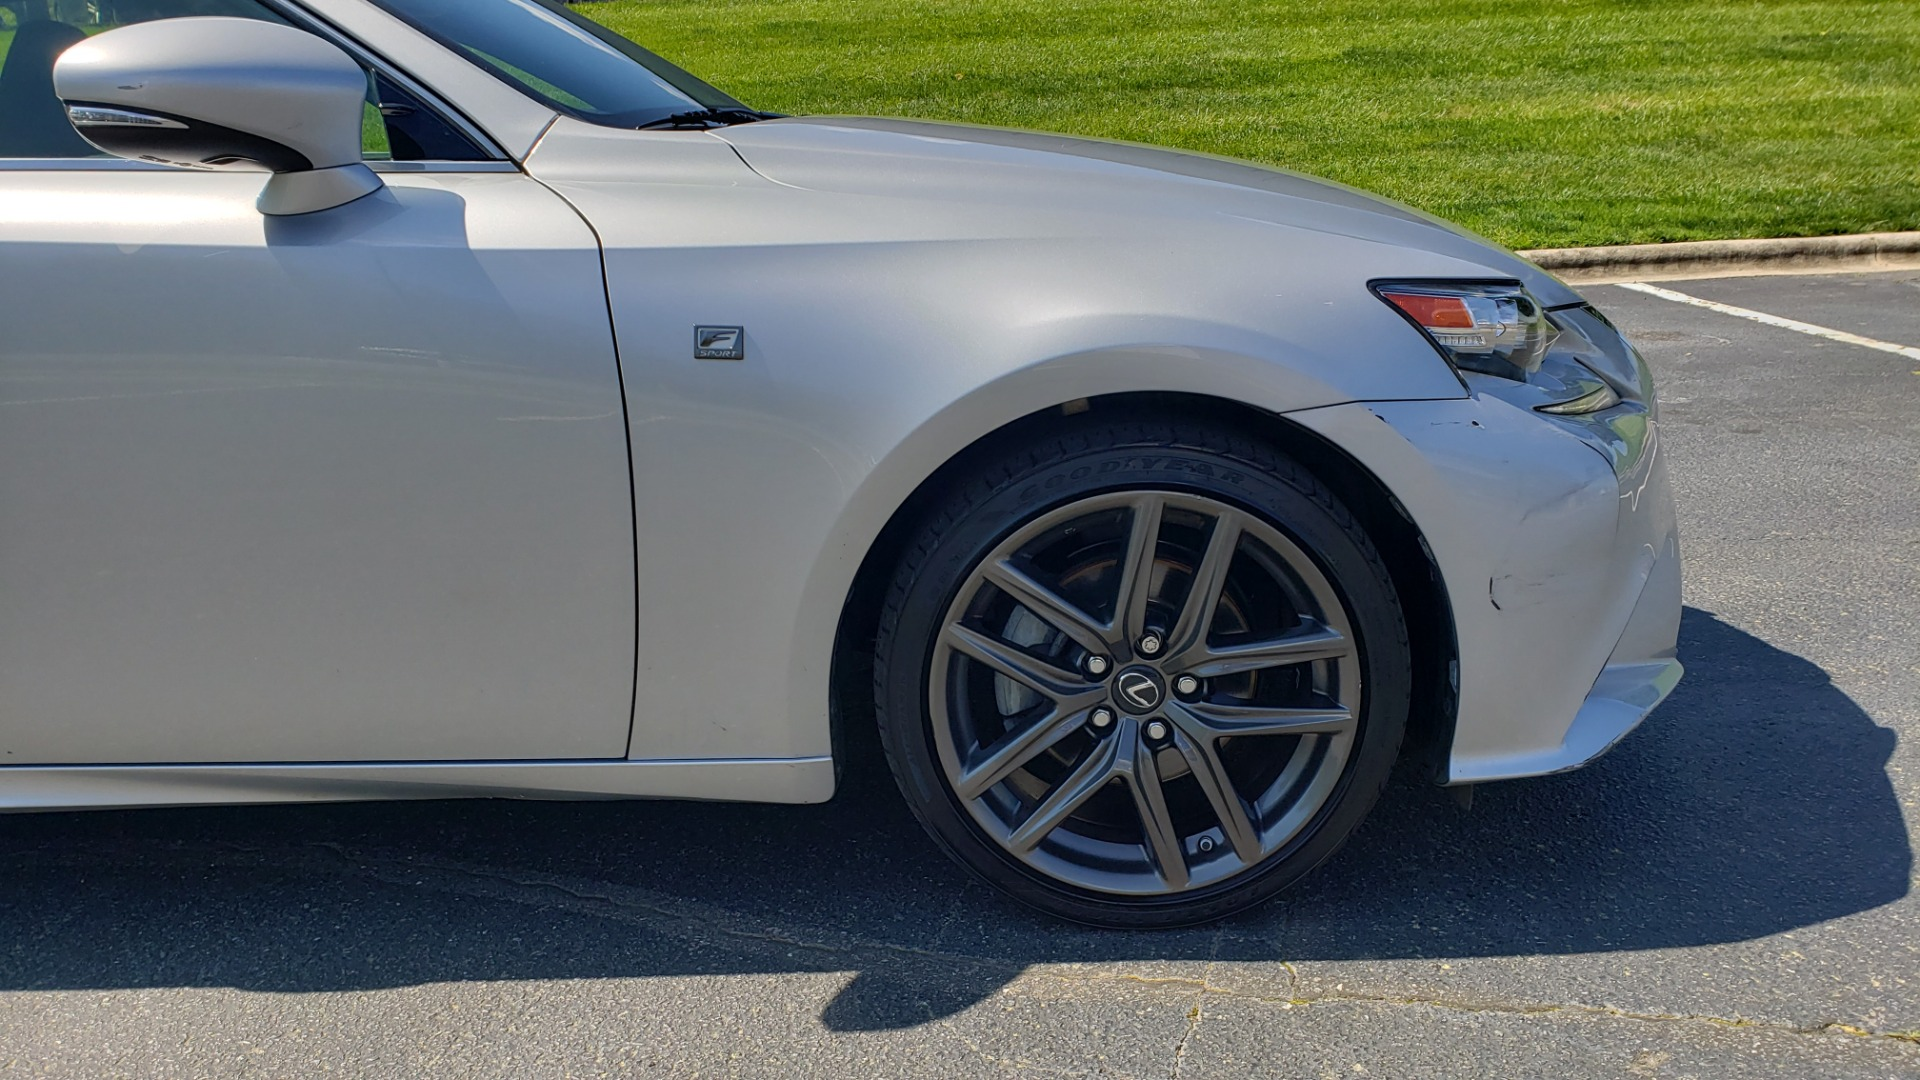 Used 2015 Lexus IS 250 F-SPORT / BSM / SUNROOF / VENT SEATS / REARVIEW for sale Sold at Formula Imports in Charlotte NC 28227 12